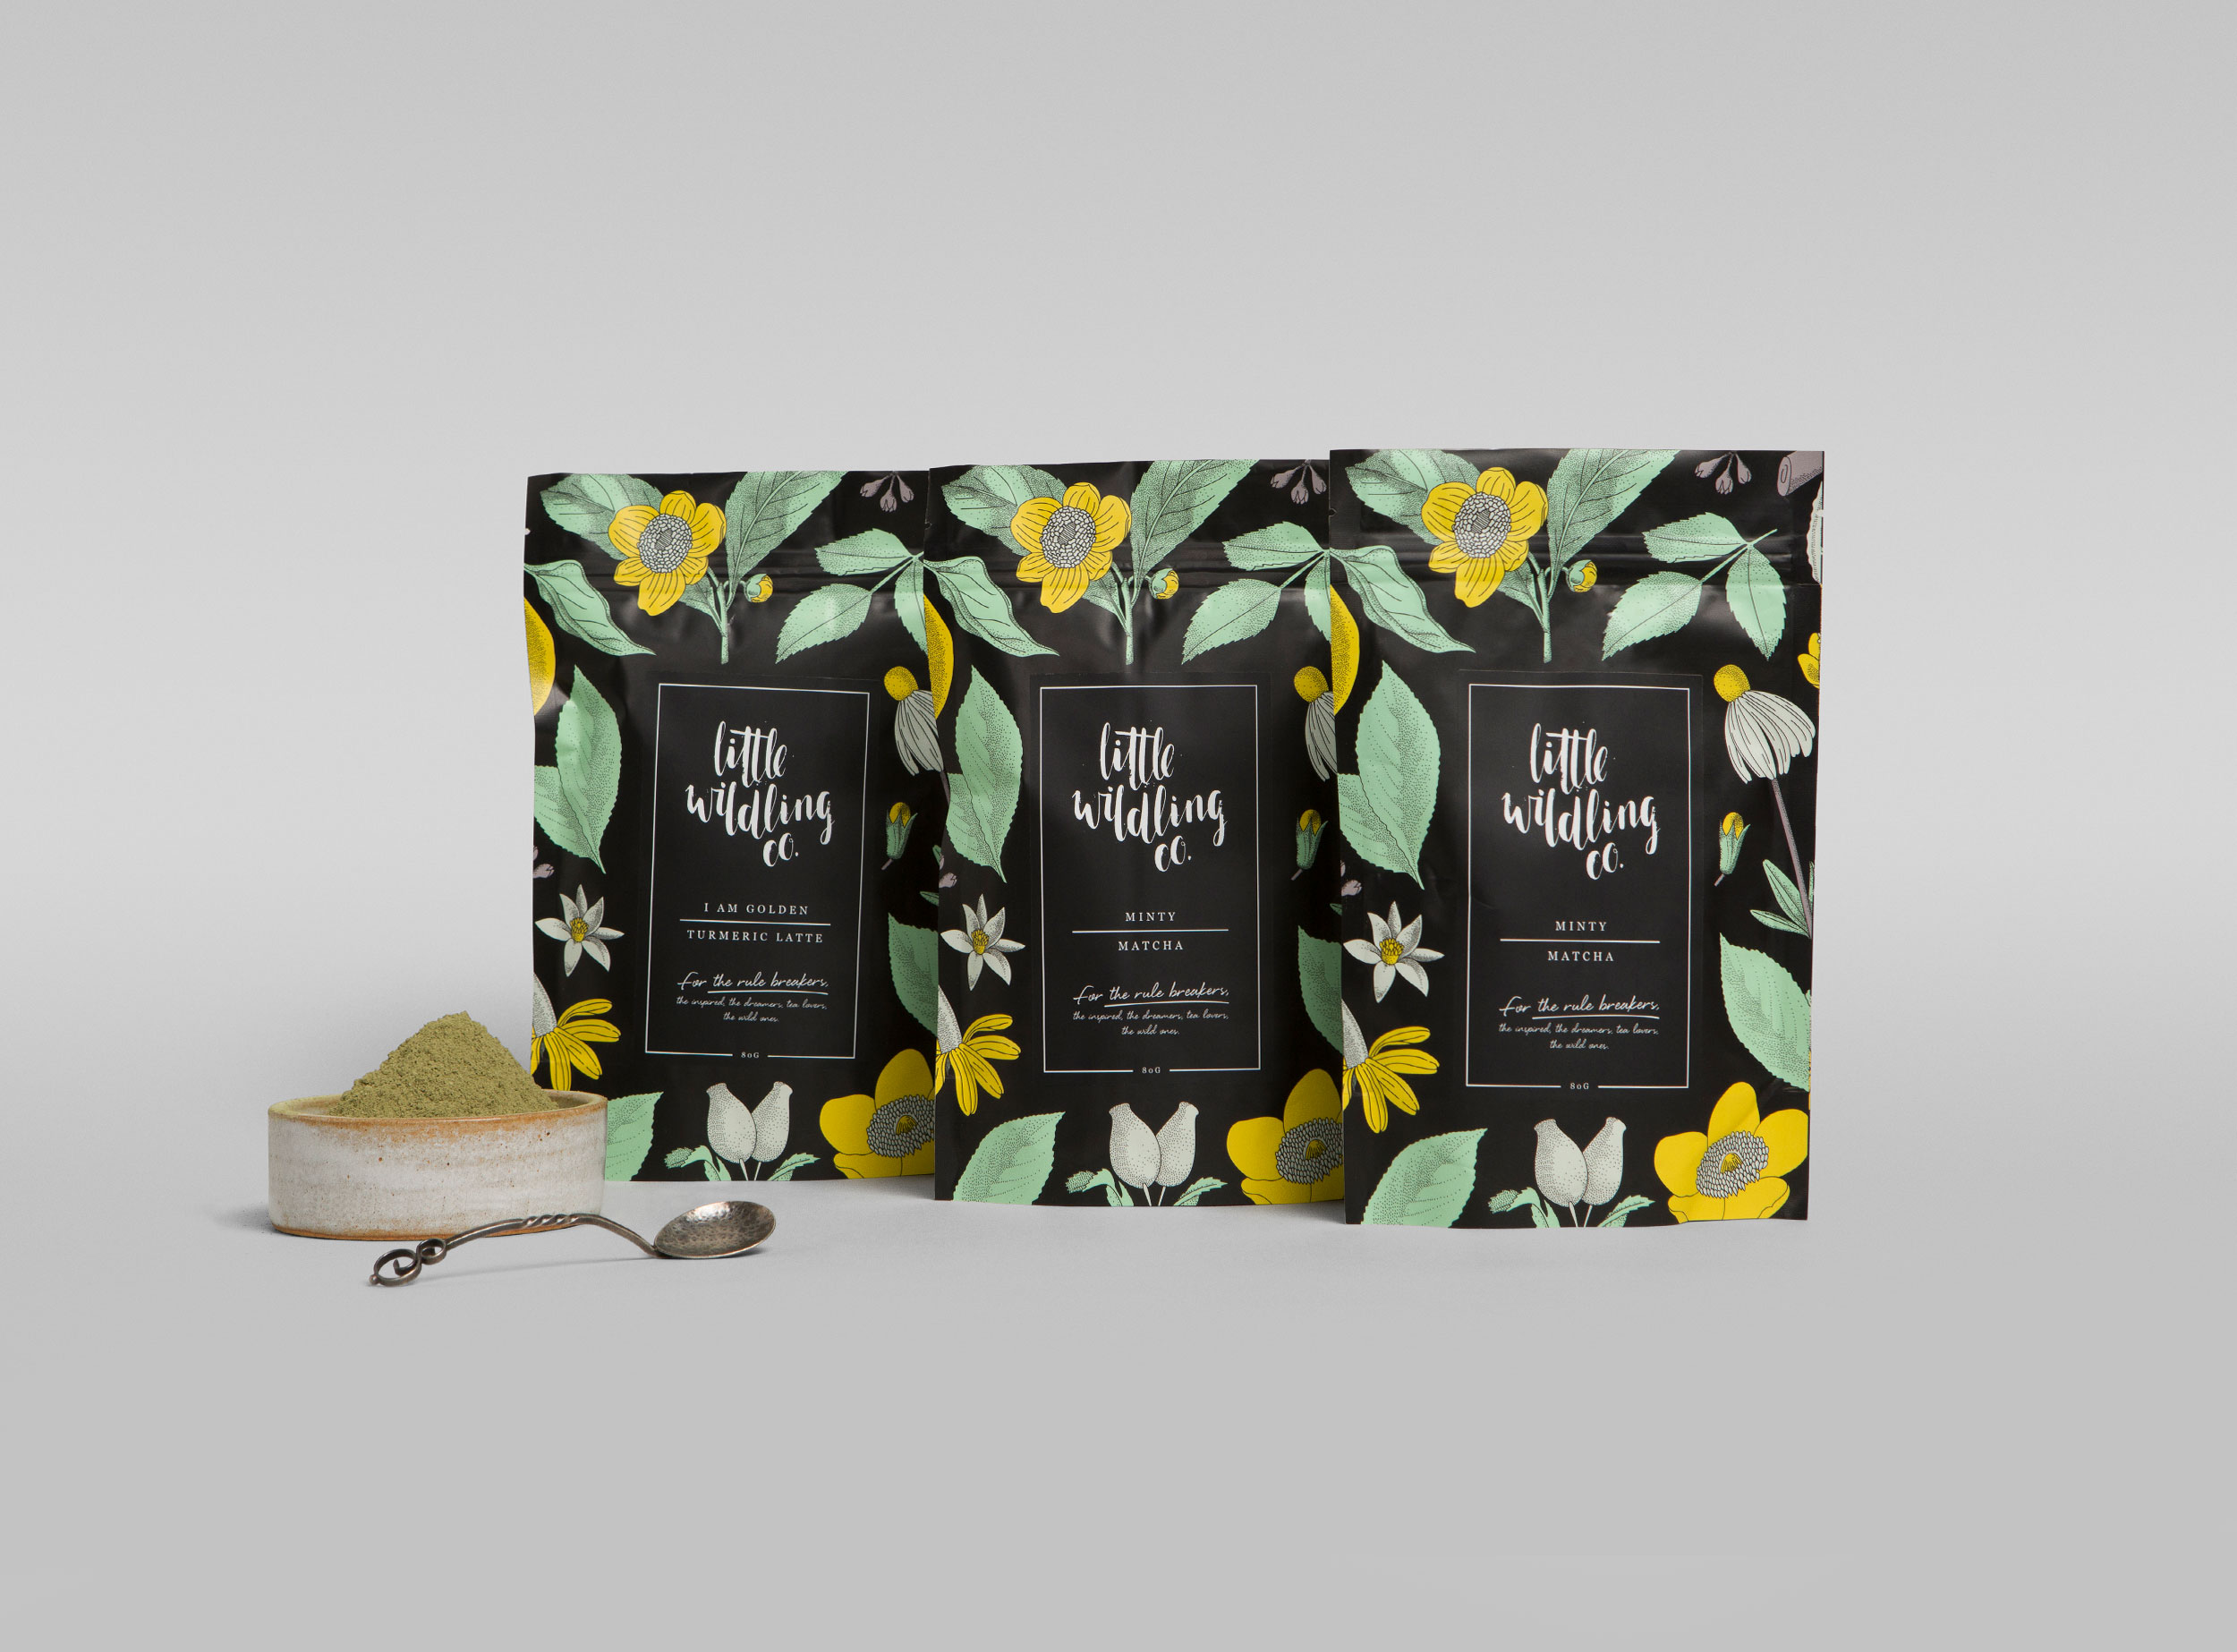 Three bags of Little Wildling Co tea sit side by side. The bags are brightly coloured, because they are from the powdered tea range (matcha powder).